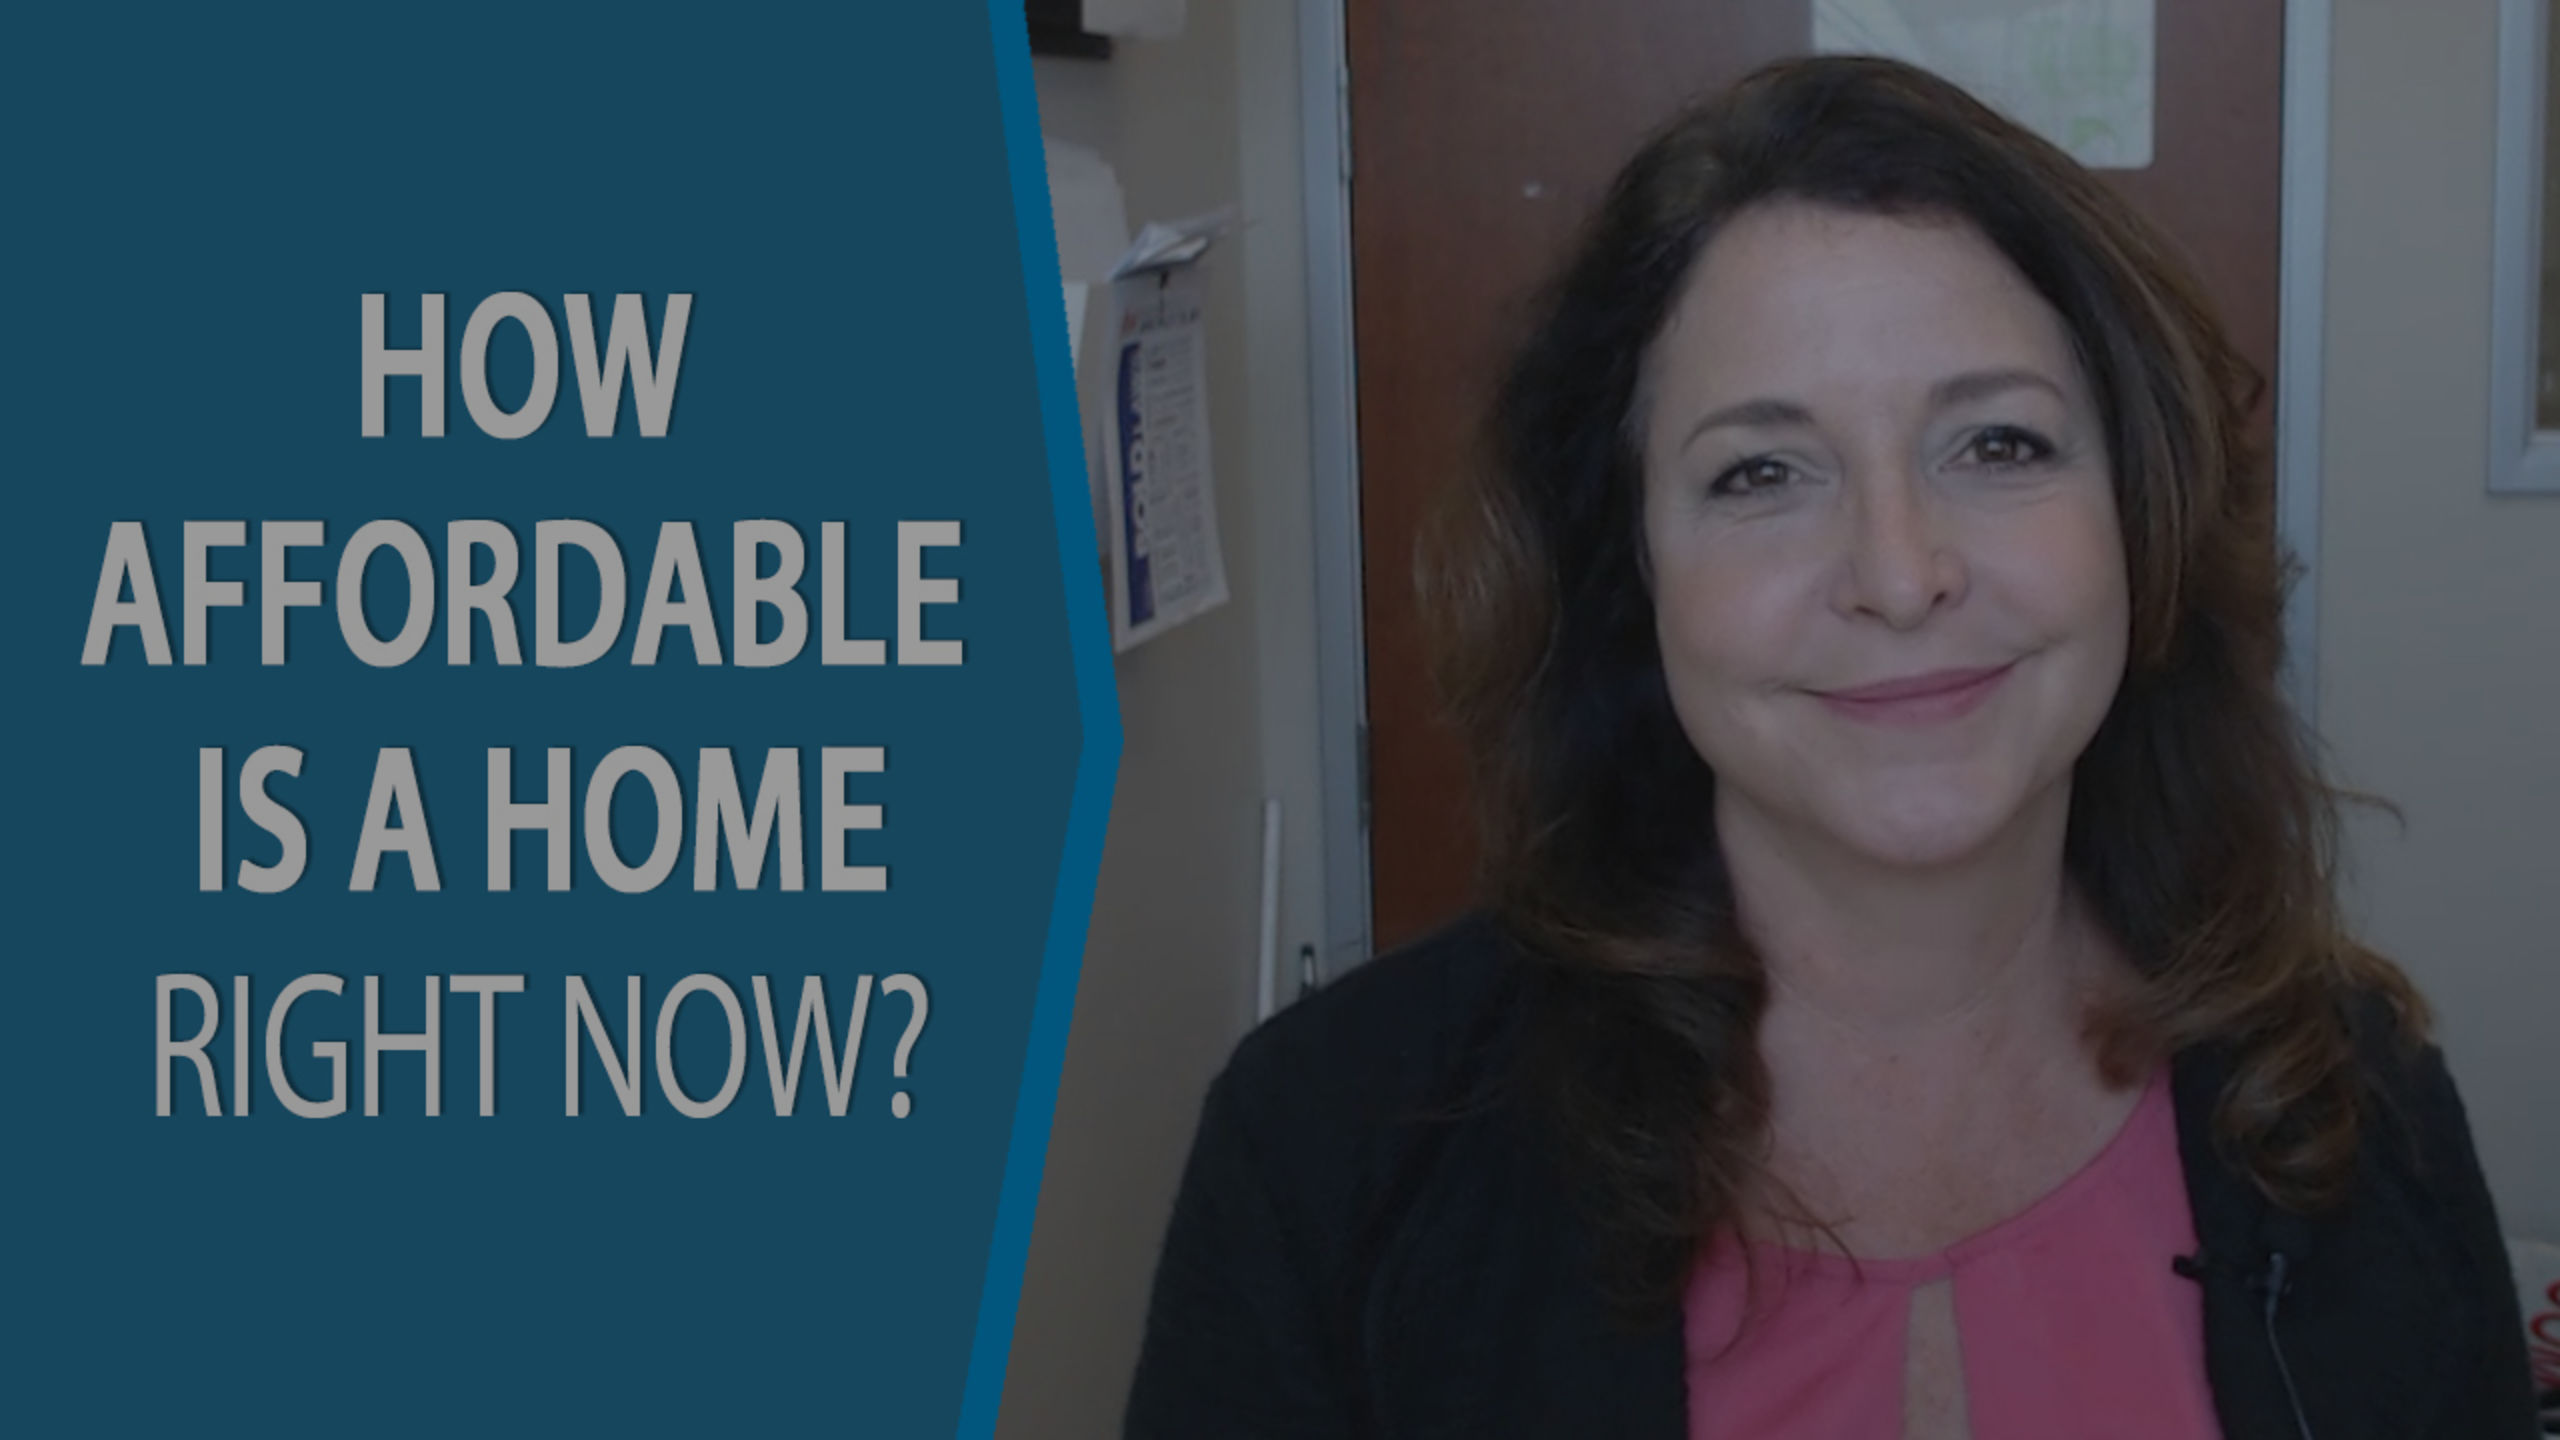 Q: How Affordable Is a Home Right Now?